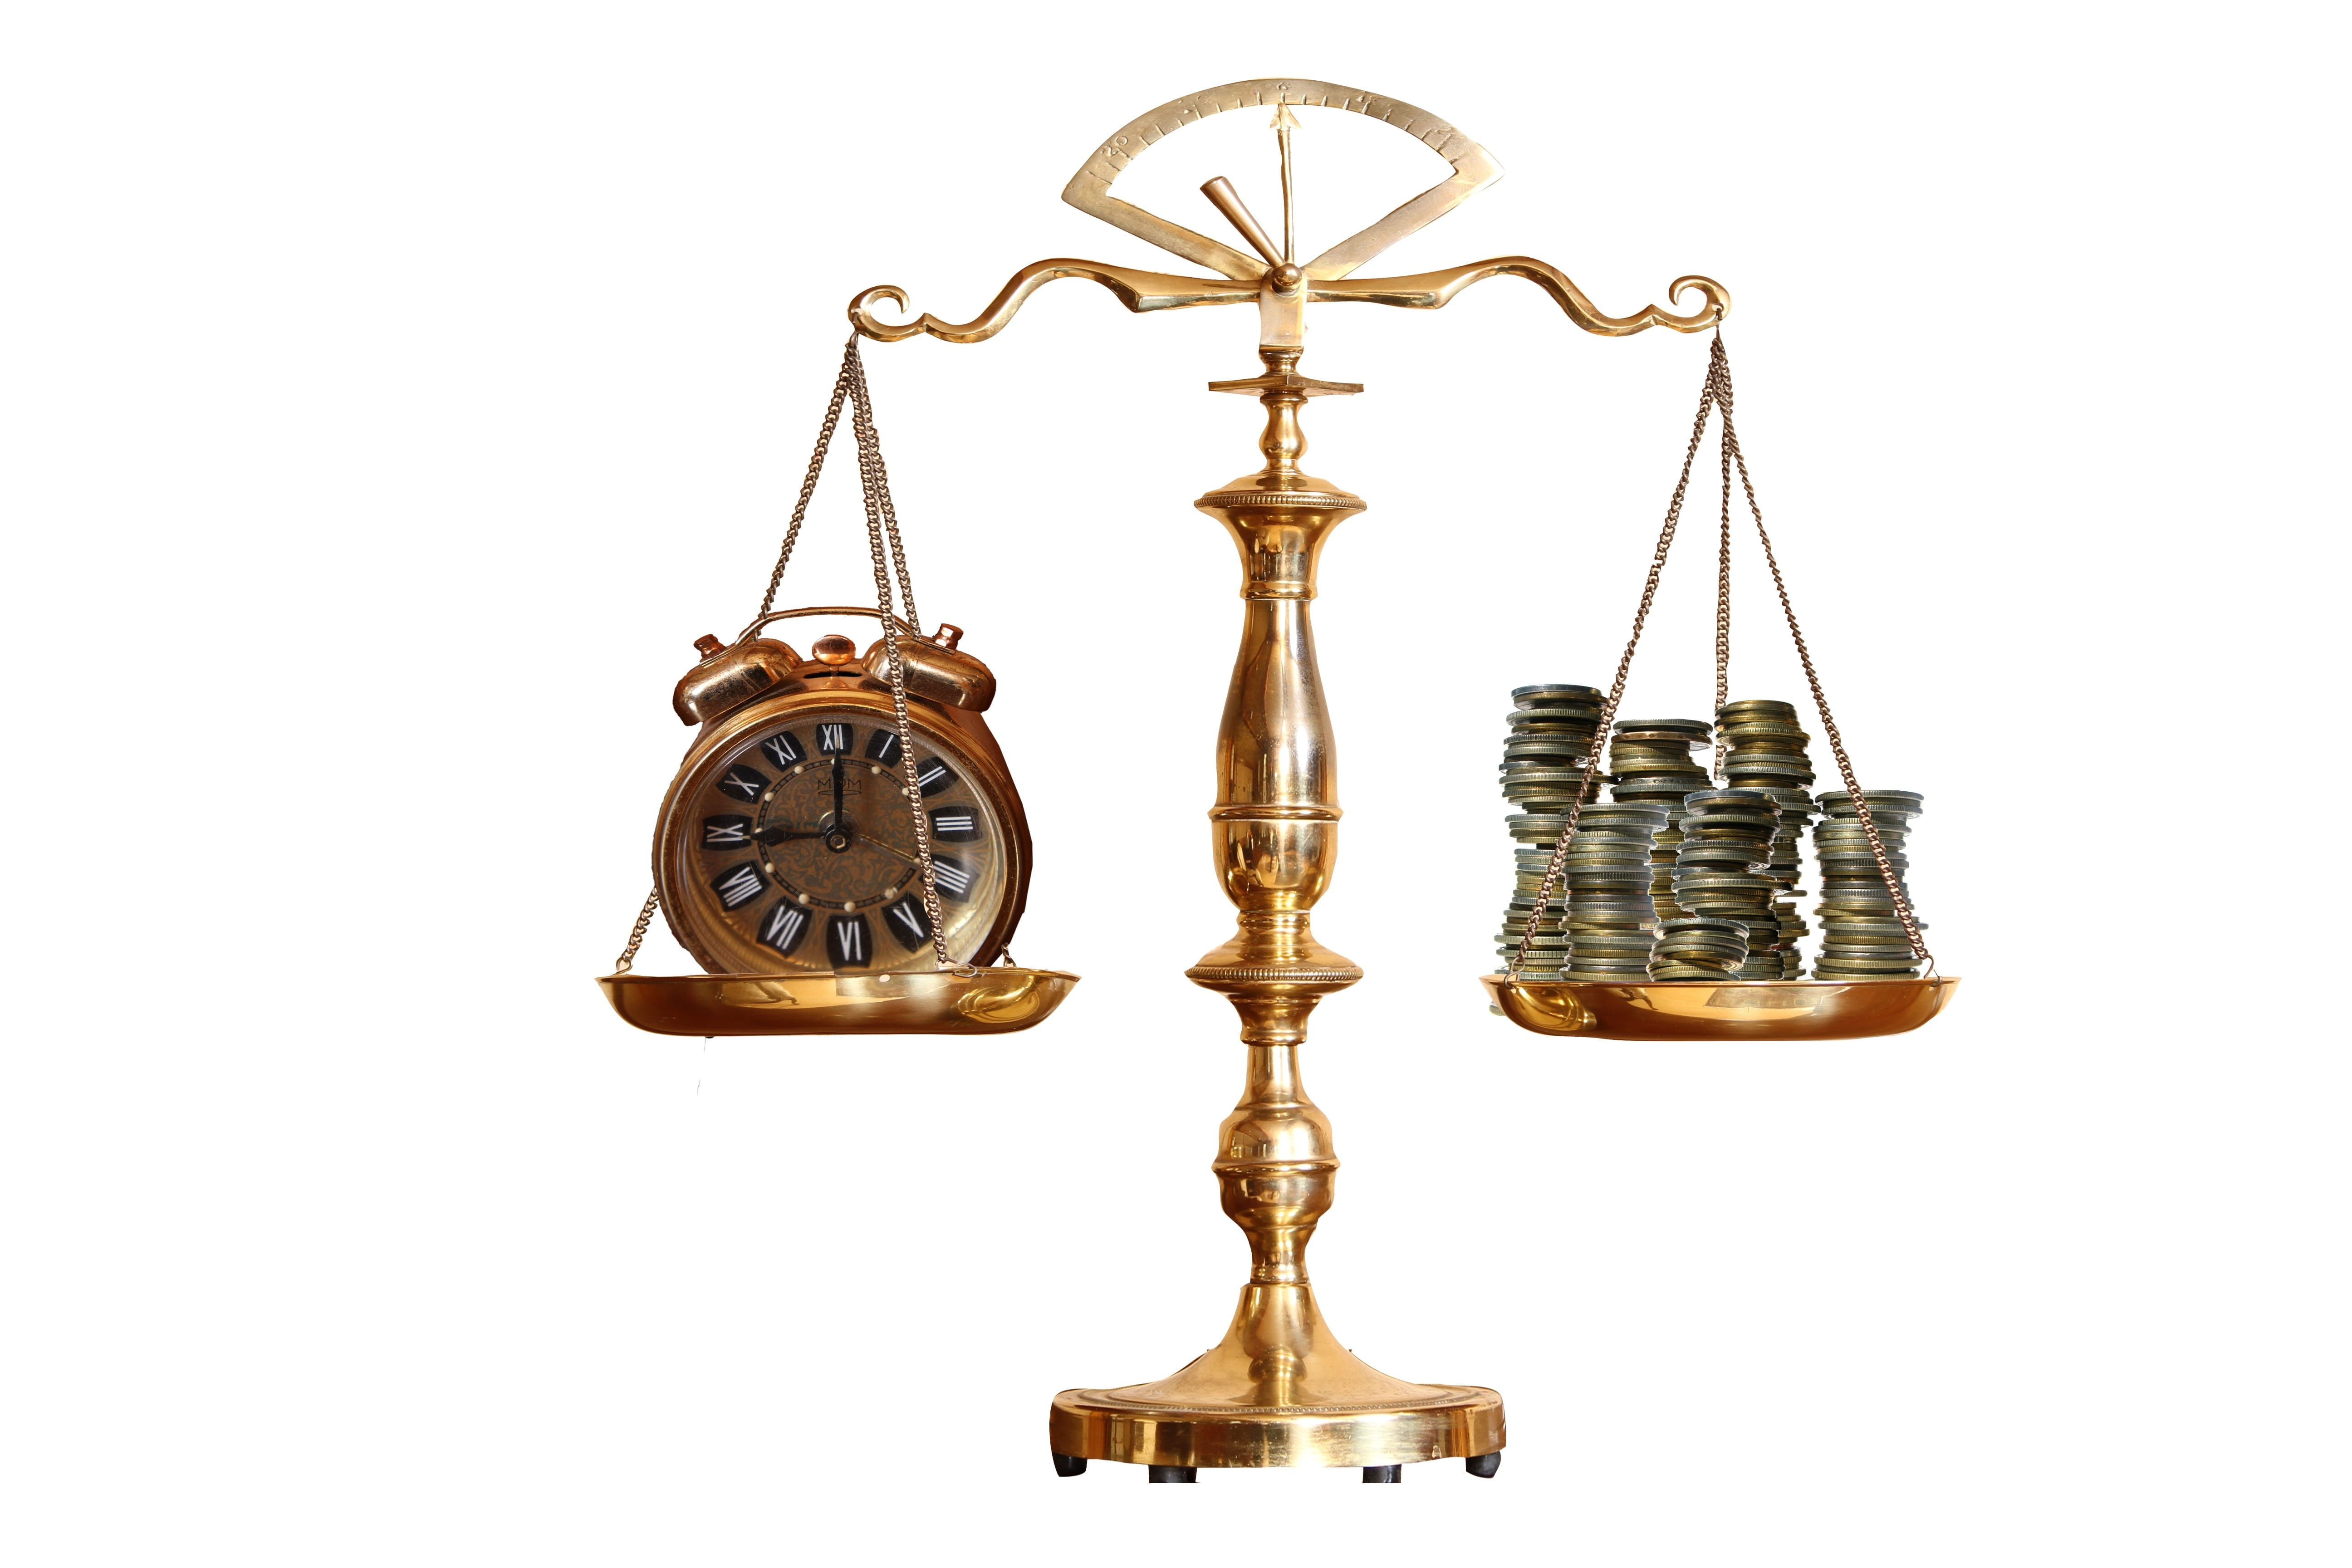 Brass Colored Balance Scale With Analog Clock And Coins Brass